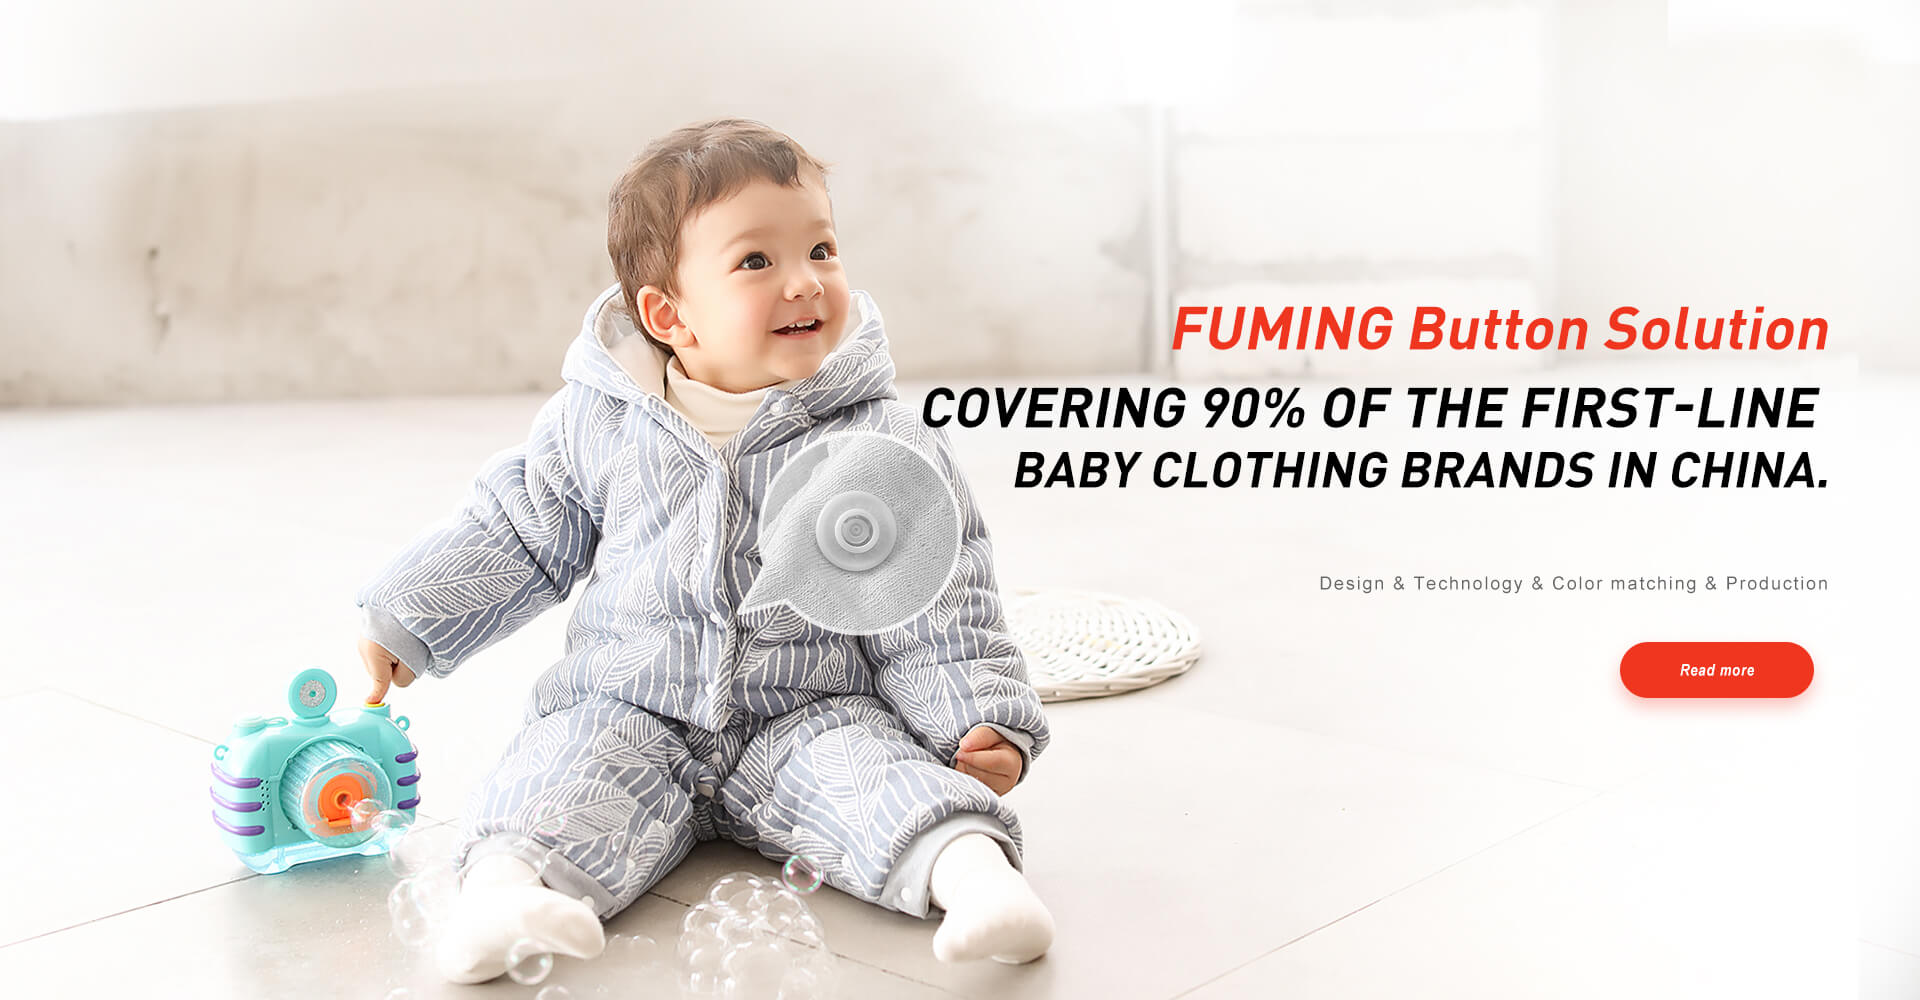 FUMING Button solution,covering 90% of the first-line baby clothing brands in china.